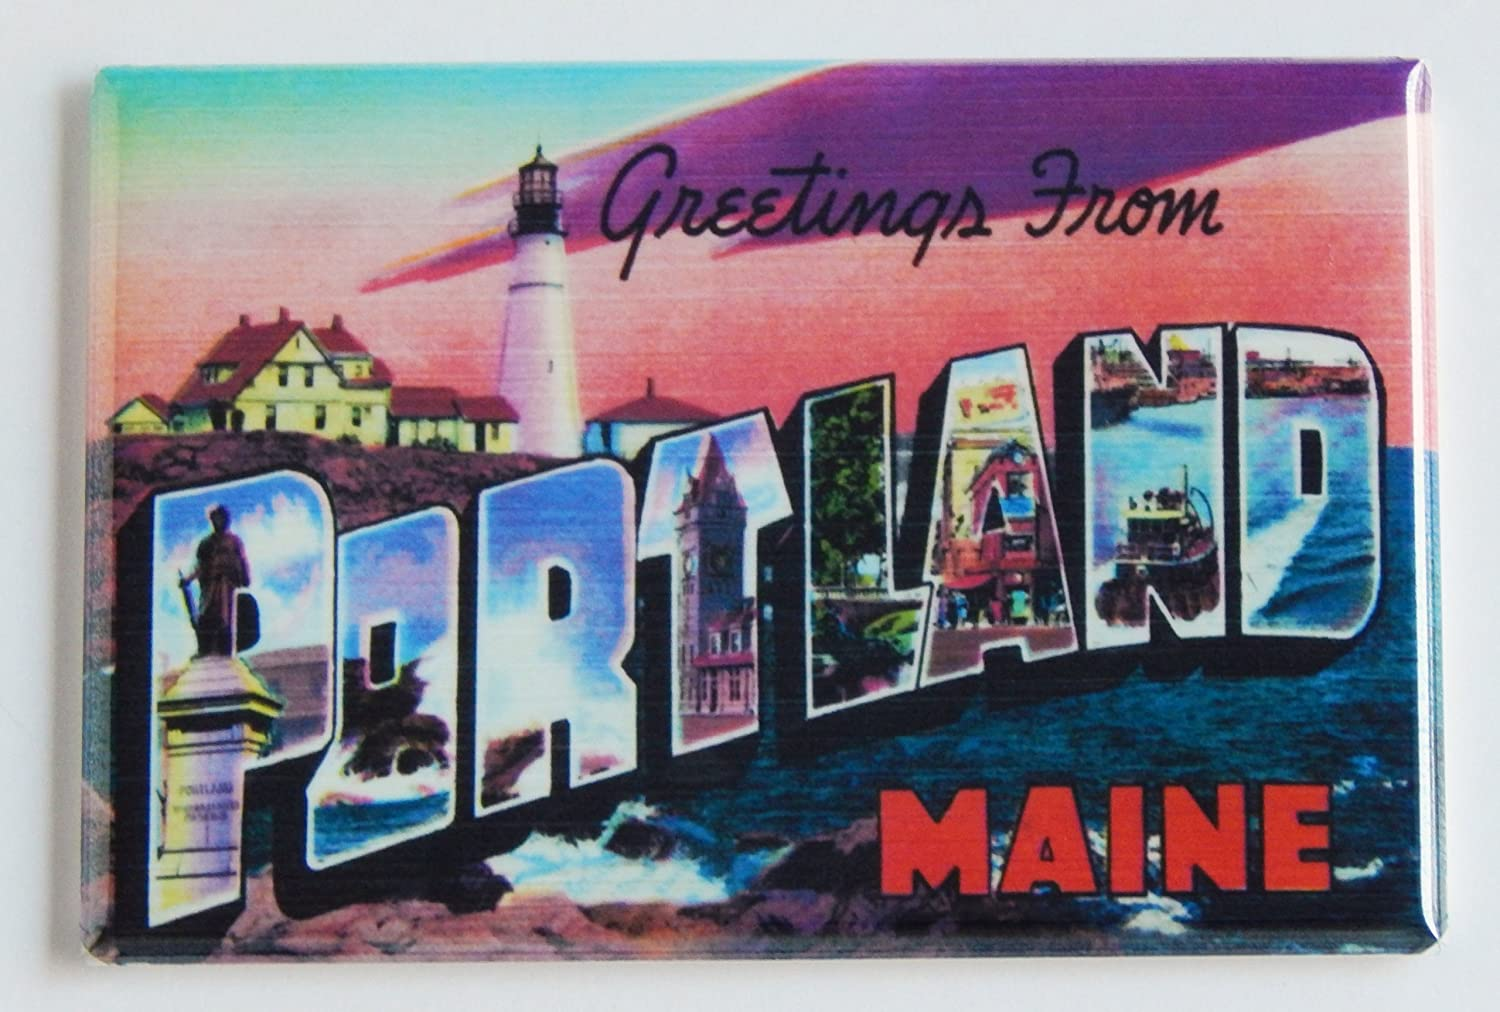 Greetings From Portland Maine Fridge Magnet (2 x 3 inches)